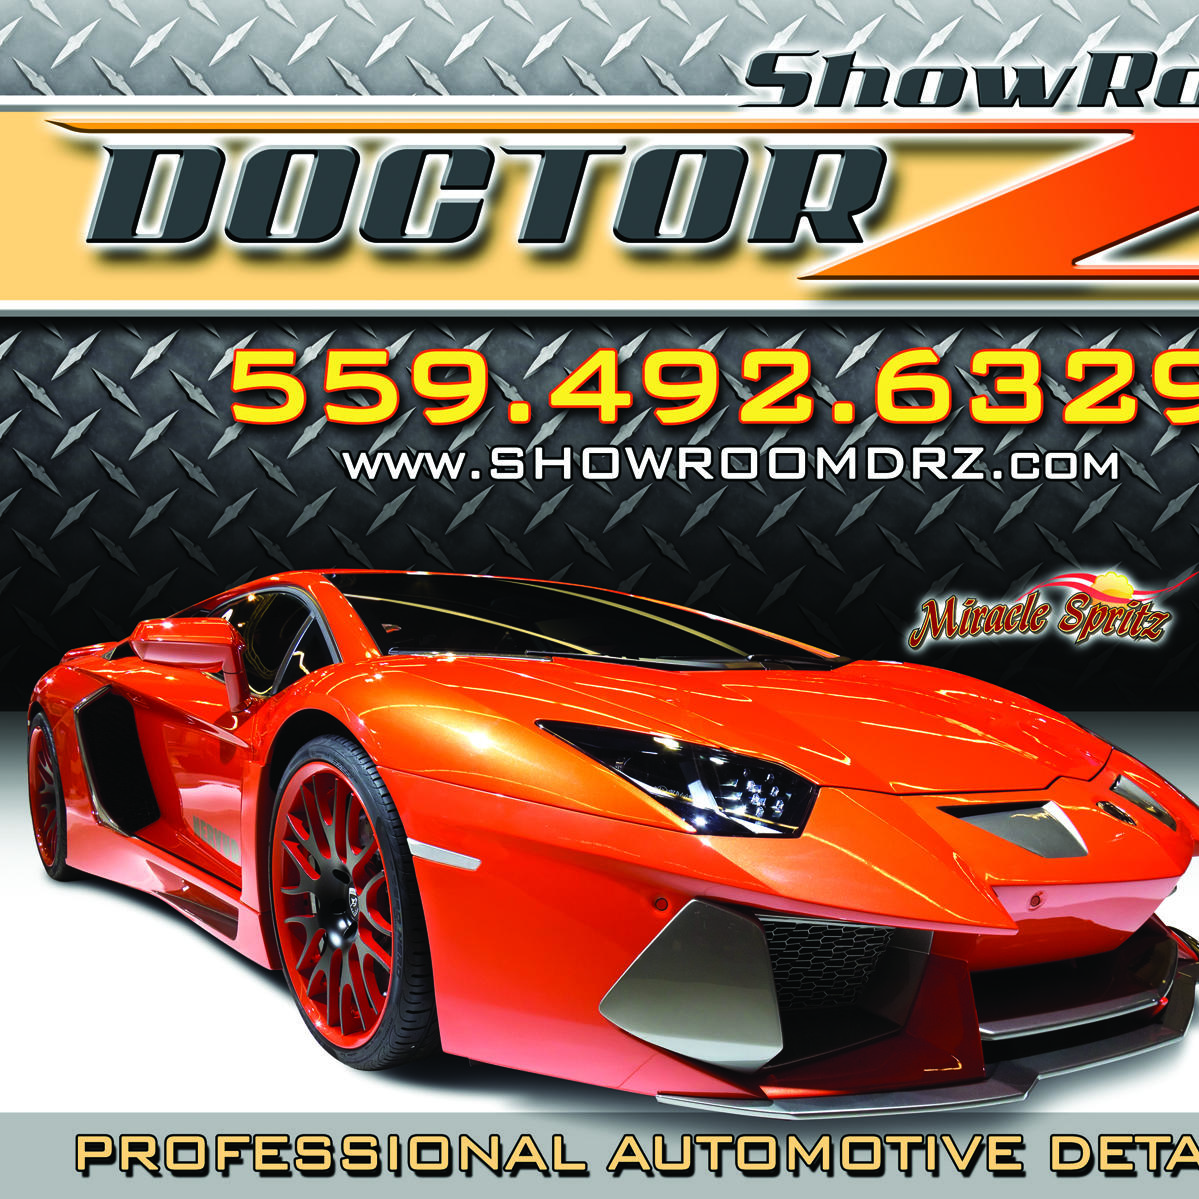 Do You Need Professional Car Care in Northern Virginia?